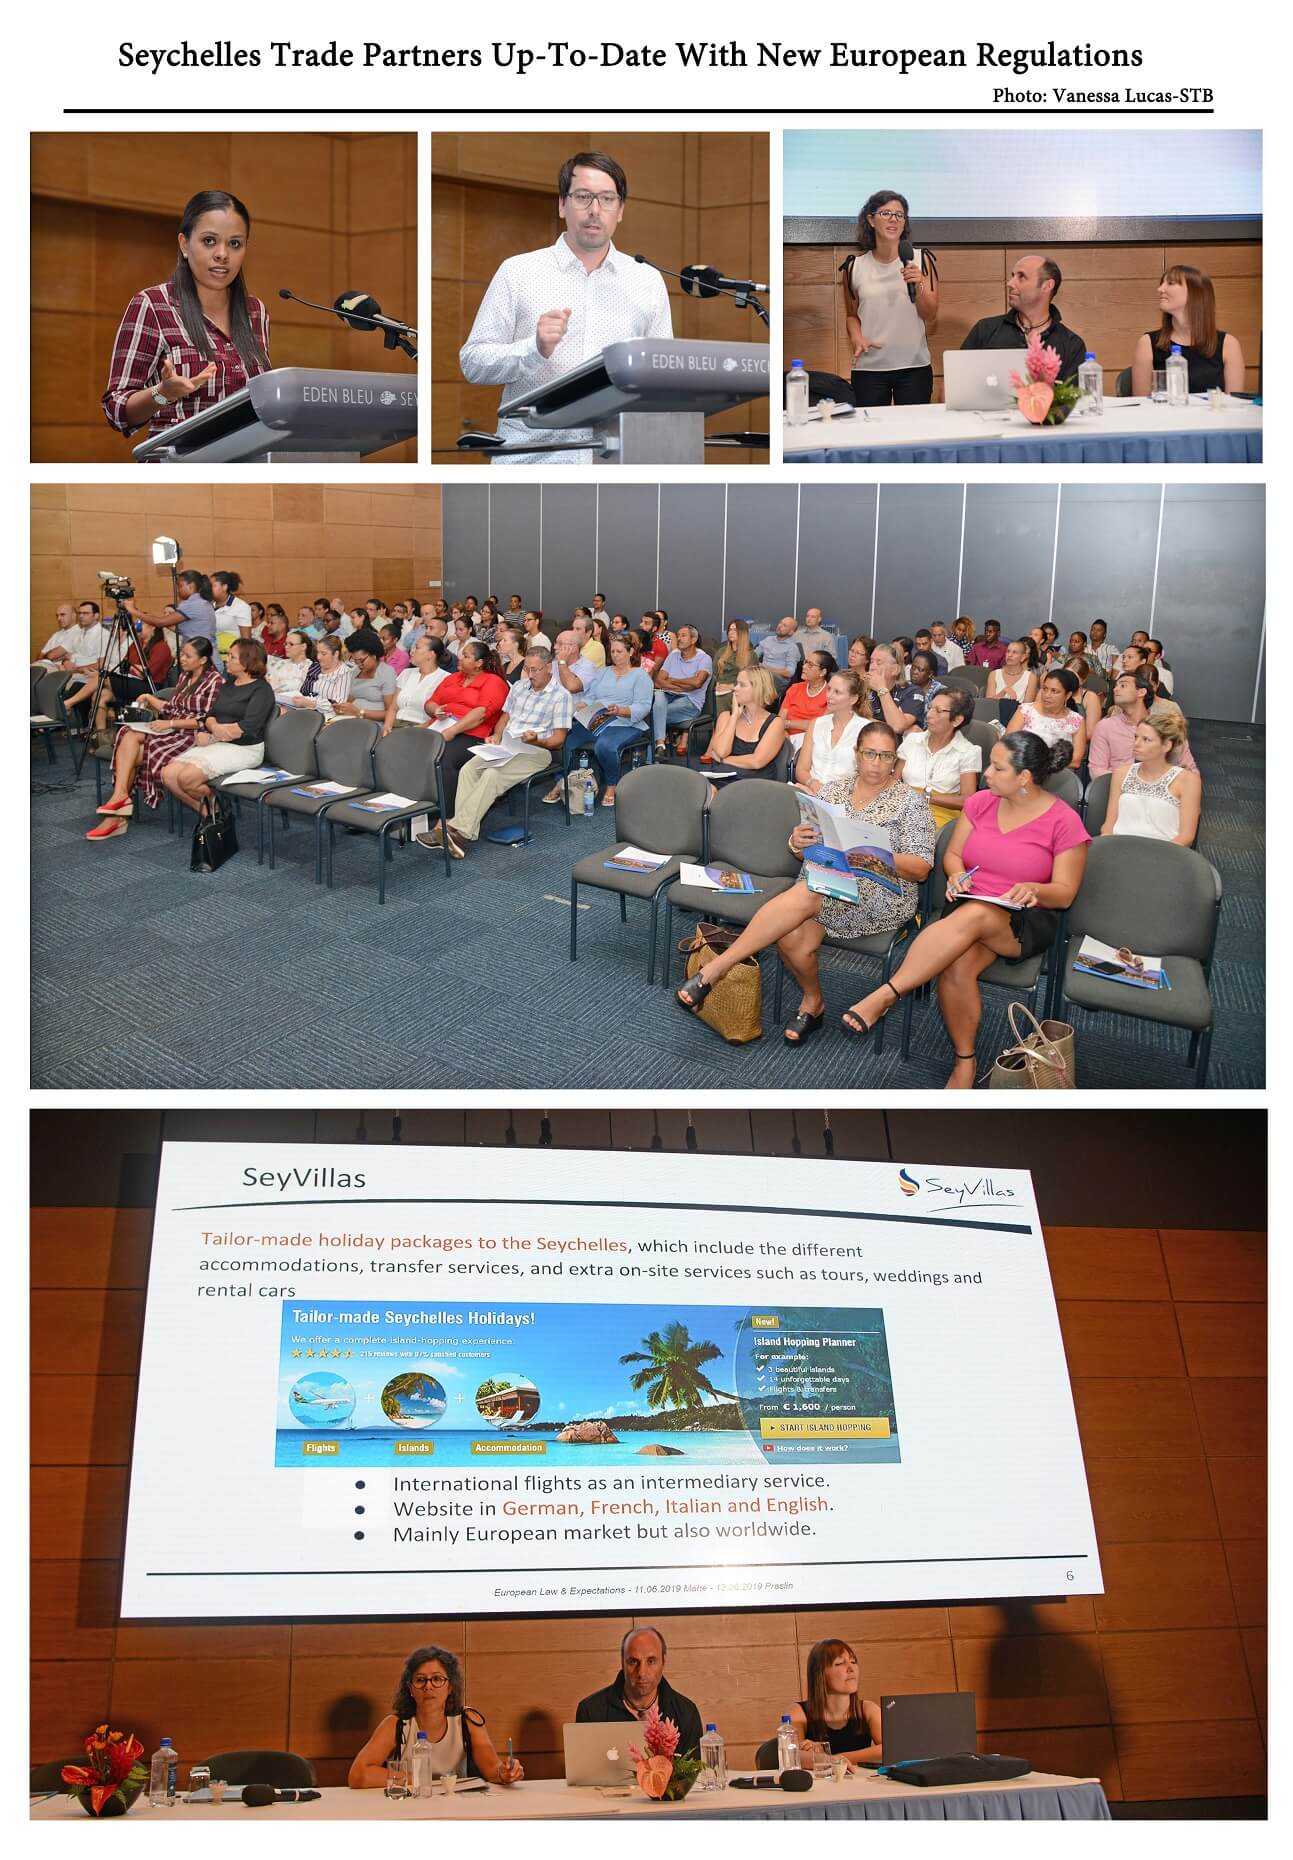 Seychelles trade partners up-to-date with new European regulations